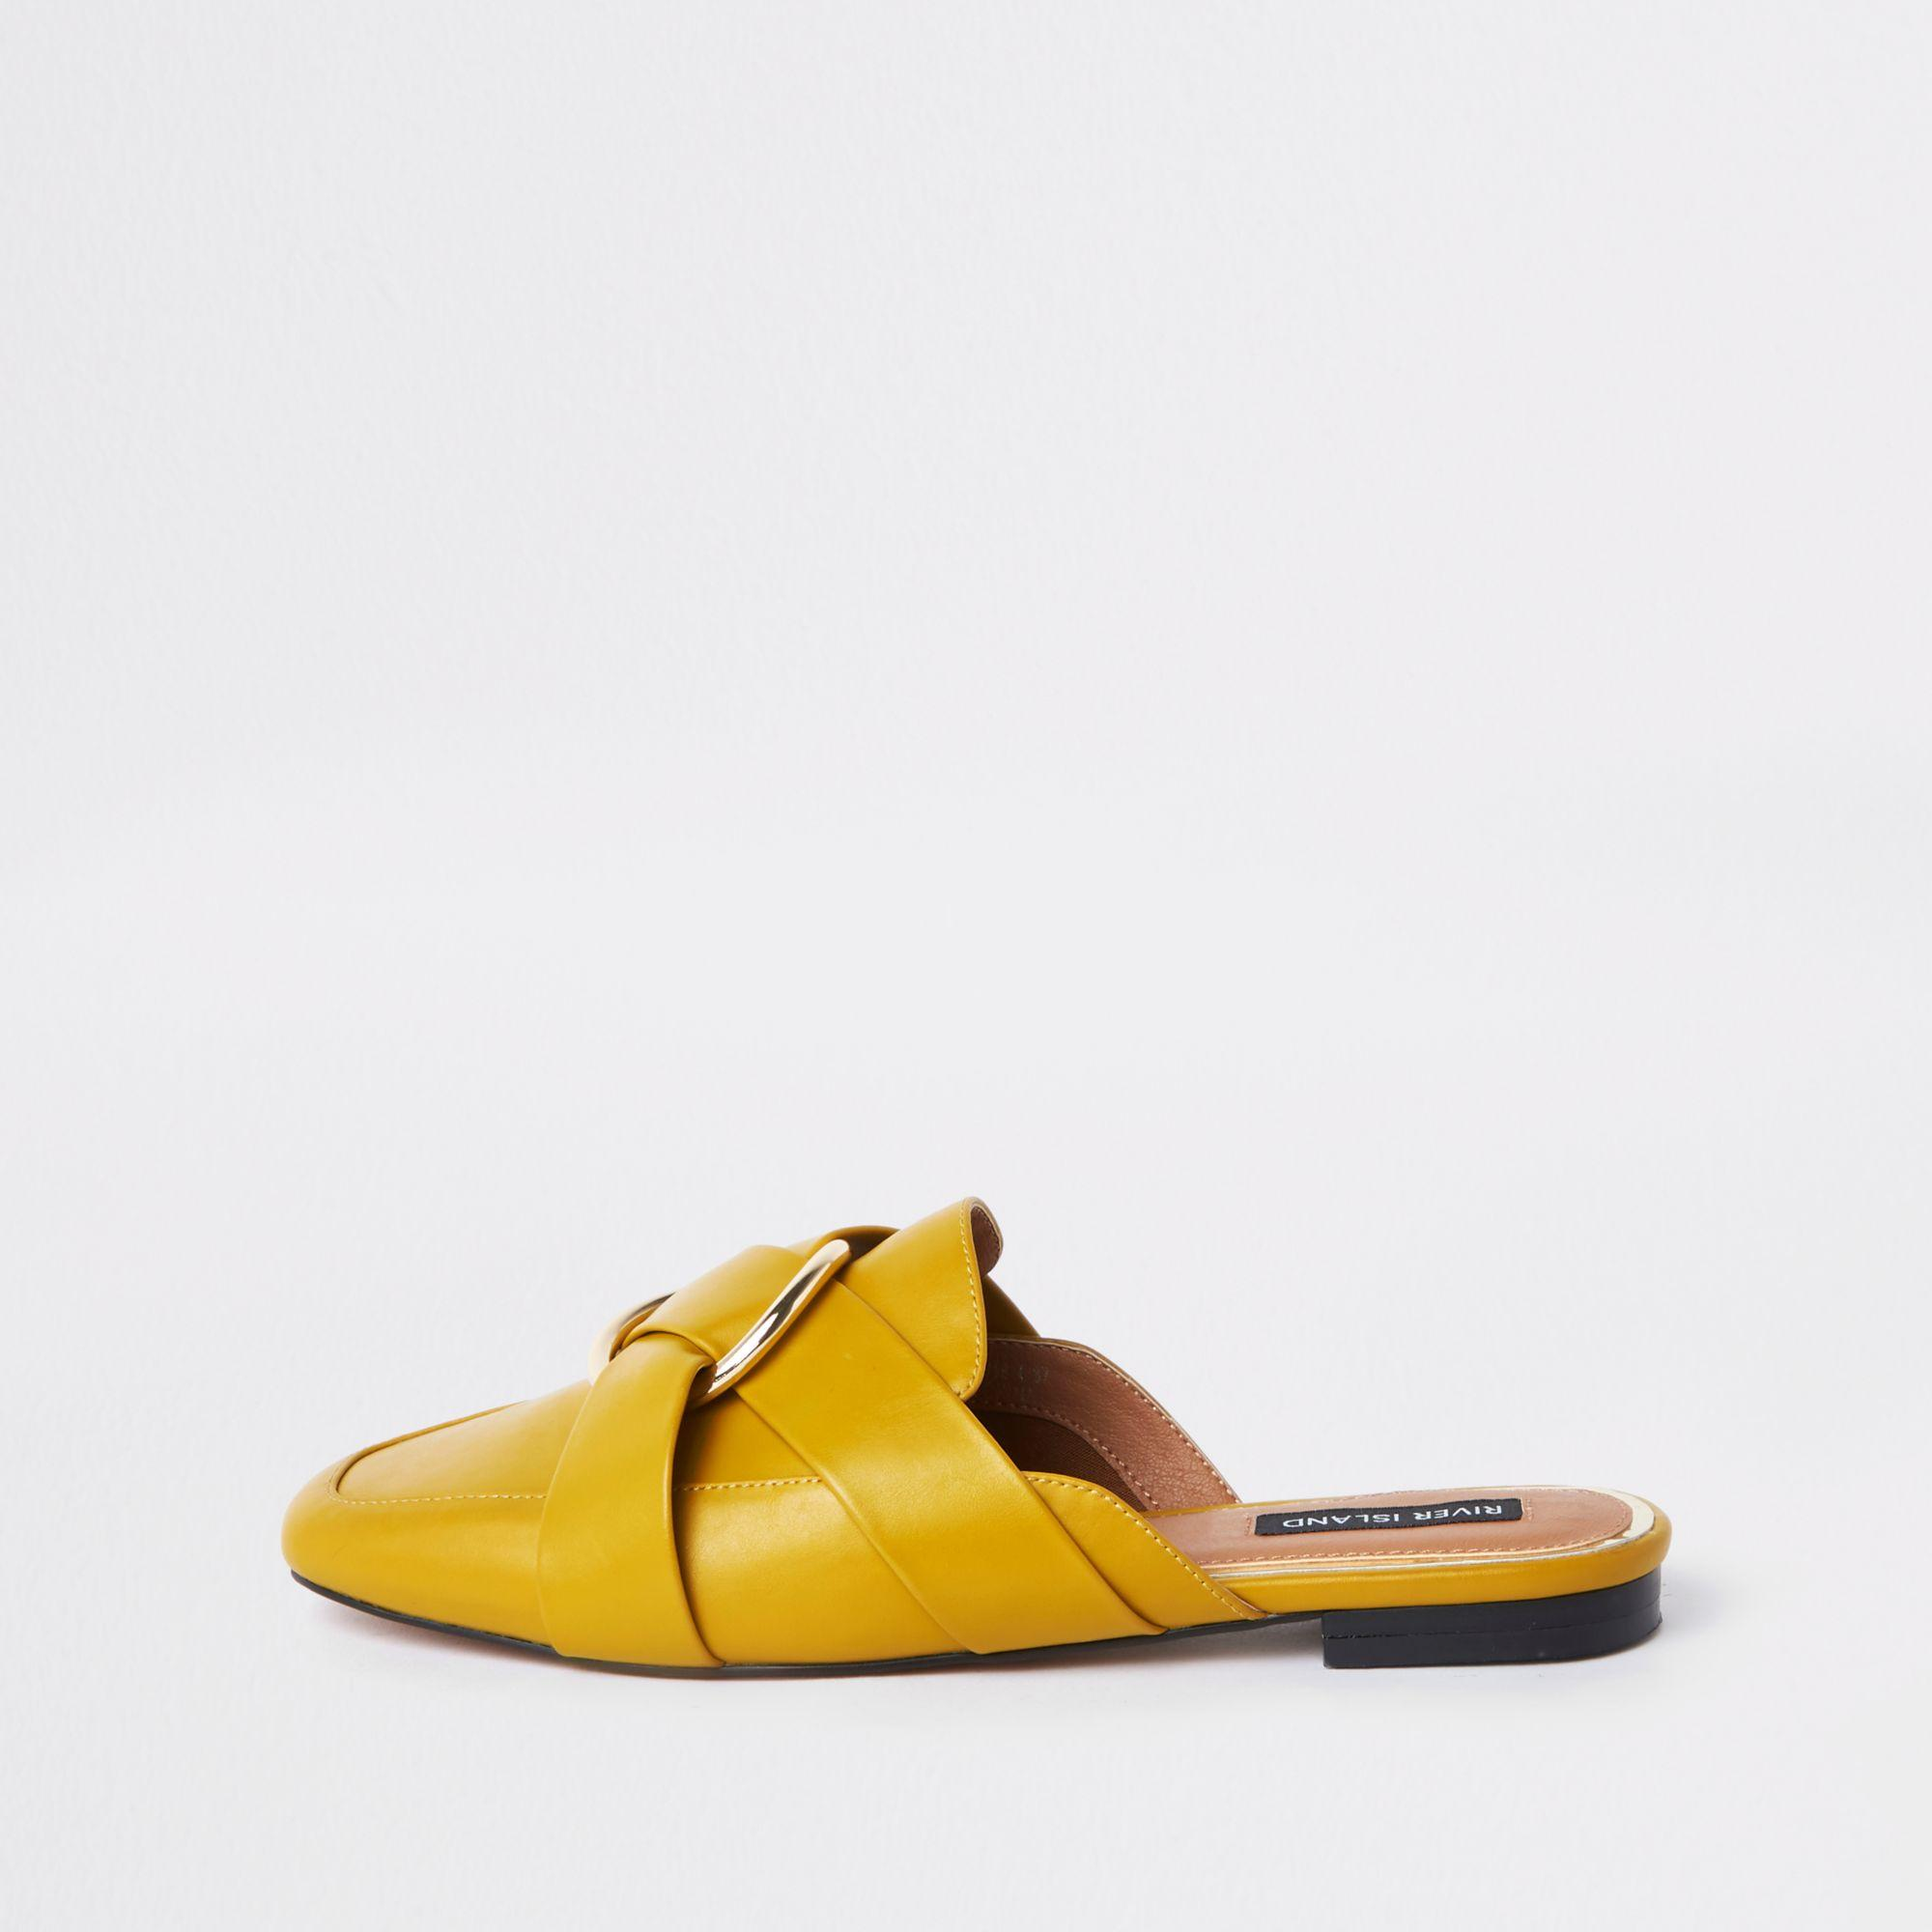 bf58eff78e9 River Island Ring Backless Loafer in Yellow - Save 11% - Lyst